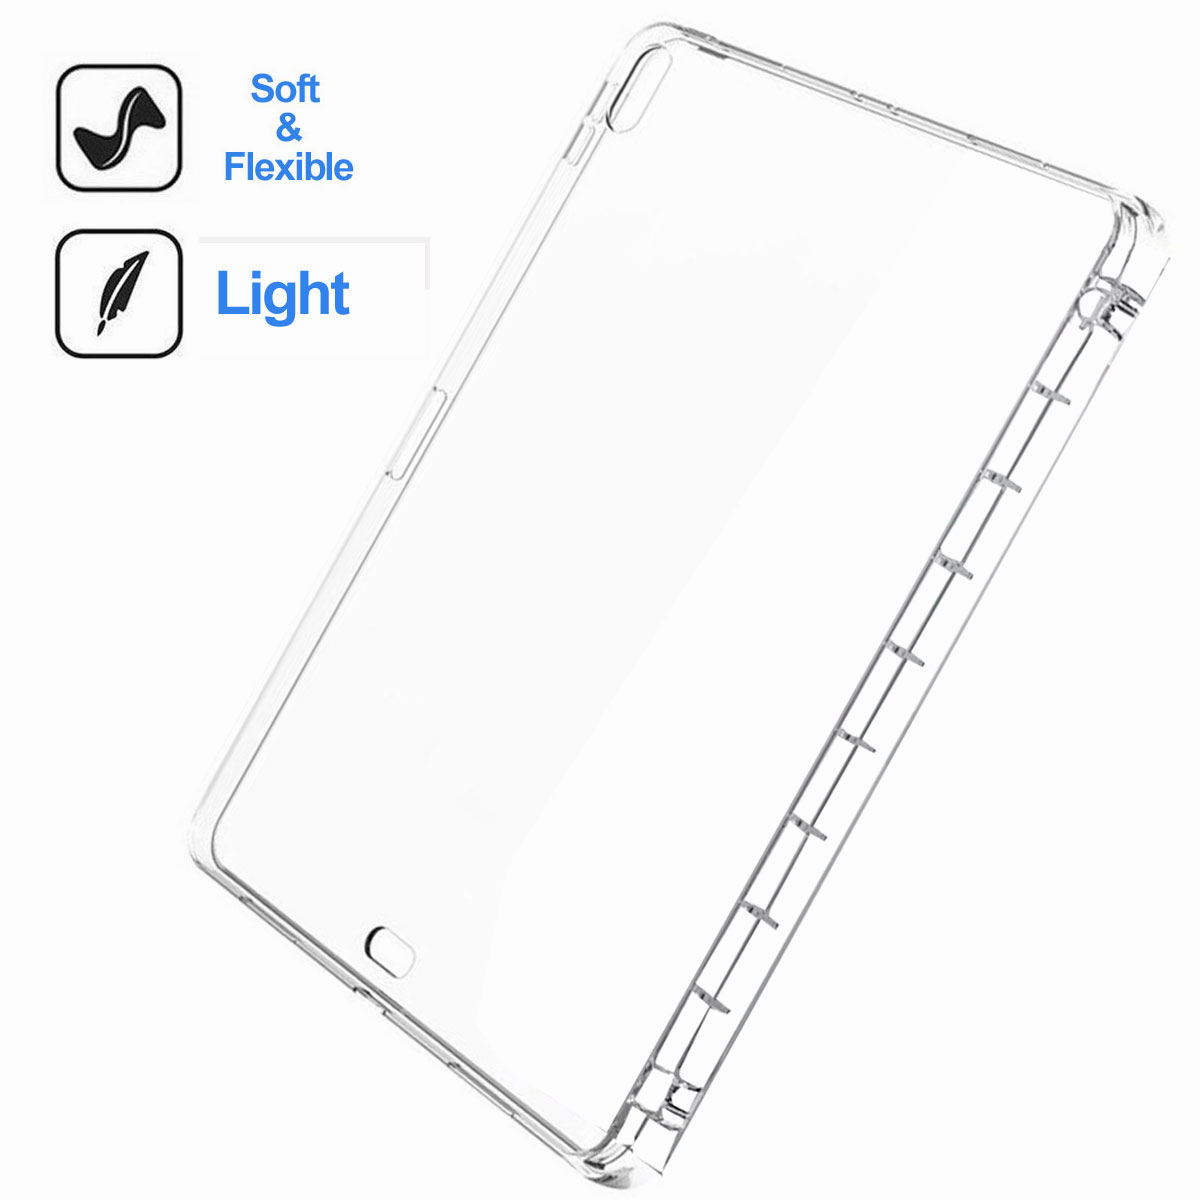 Transparent-Clear-Case-For-New-iPad-Pro-11-Inch-2018-Slim-Protective-Case-Cover thumbnail 21